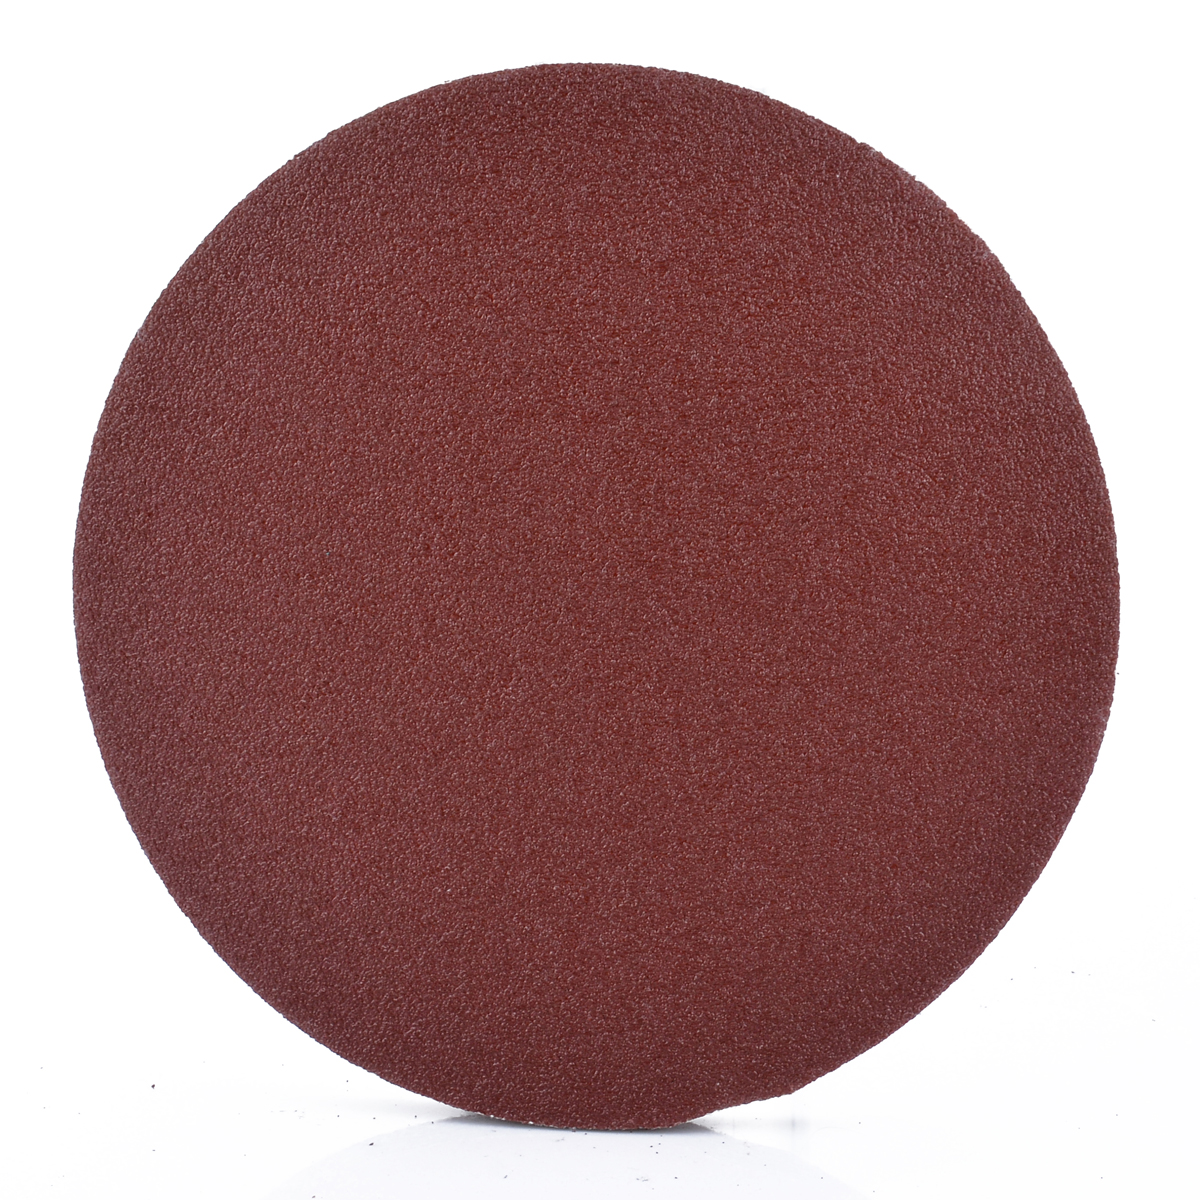 30Pcs 6 Inch Self Adhesive Sanding Disk 80/180/320 Grit Sanding Disc Stick On Sandpaper Peel for Polishing Abrasive Rotary Tools купить в Москве 2019